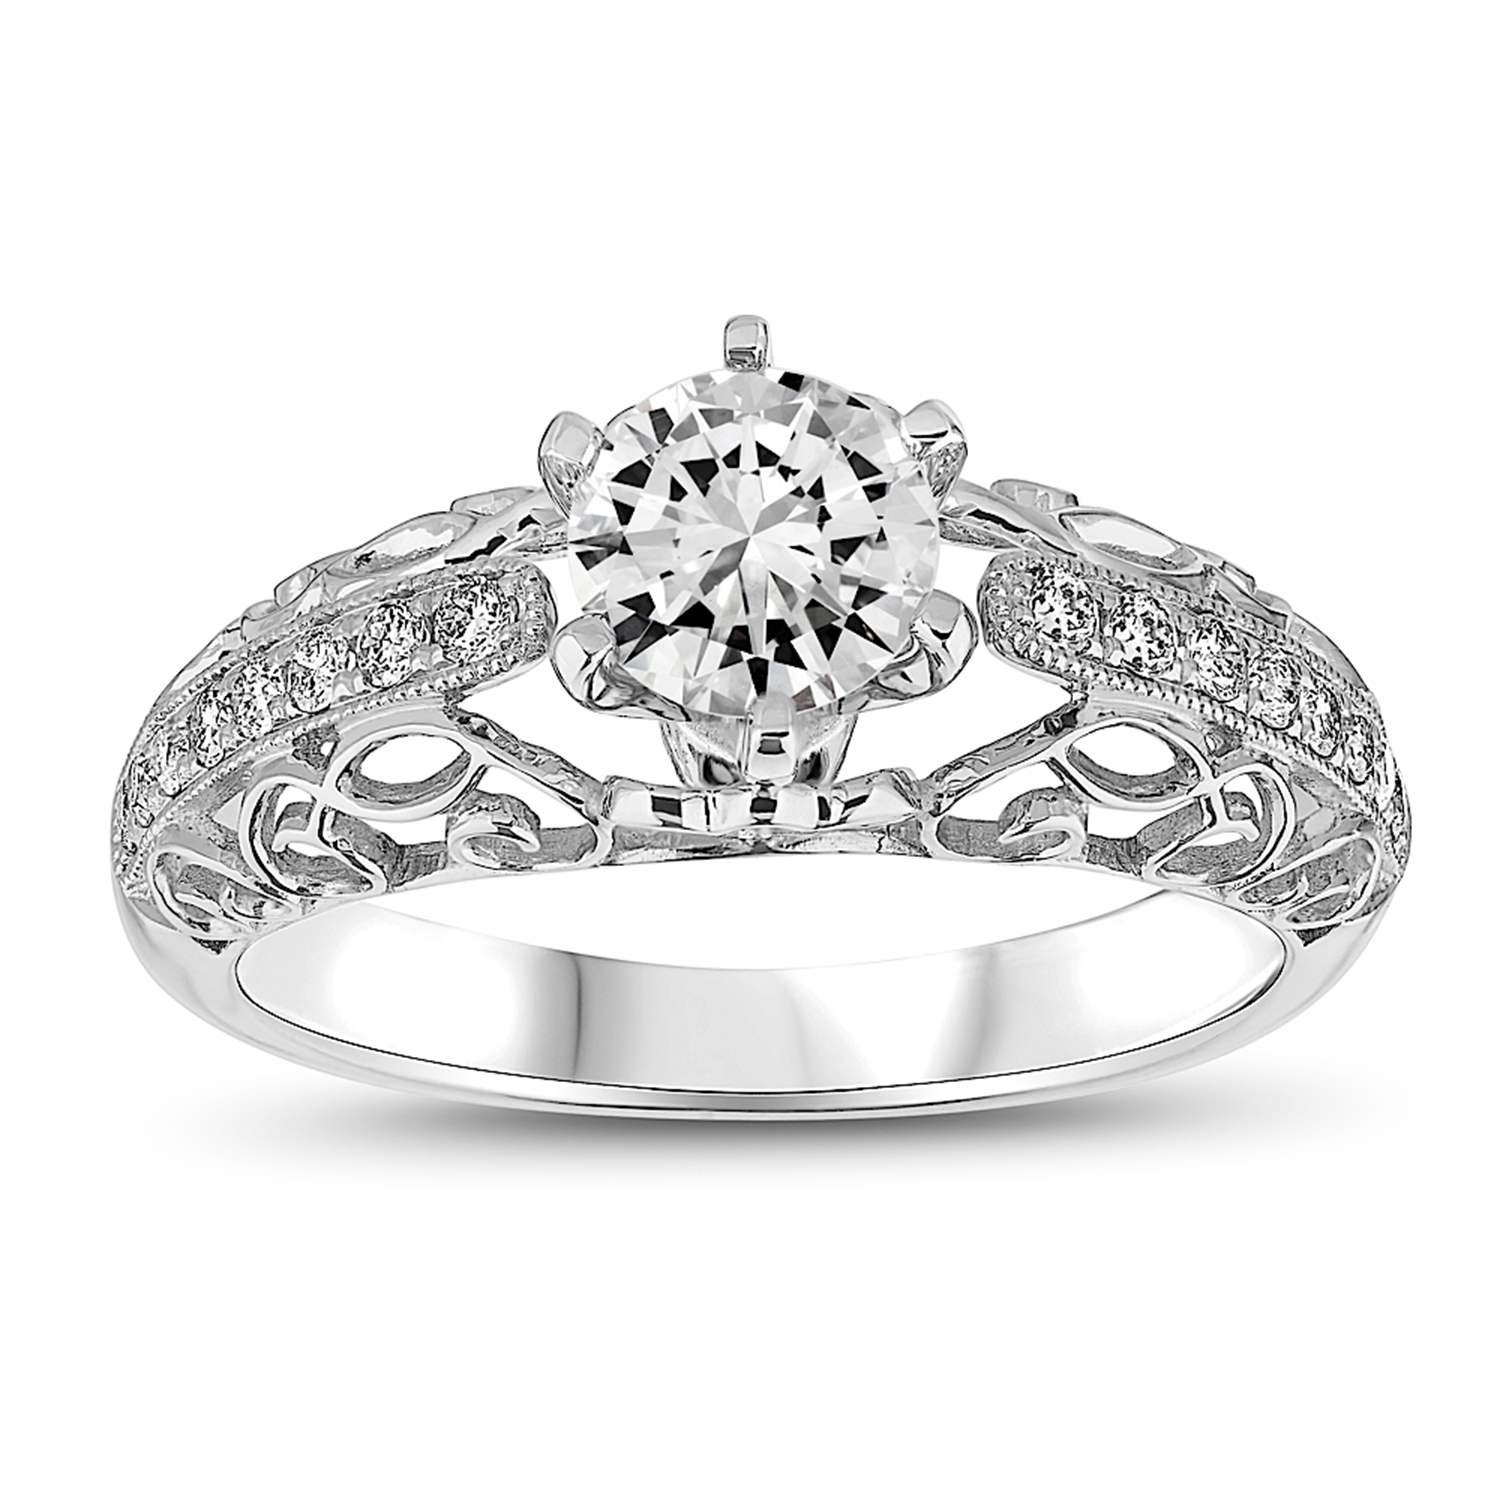 View 0.18ctw Diamond Semi Mount Engagement Ring in 14k WG